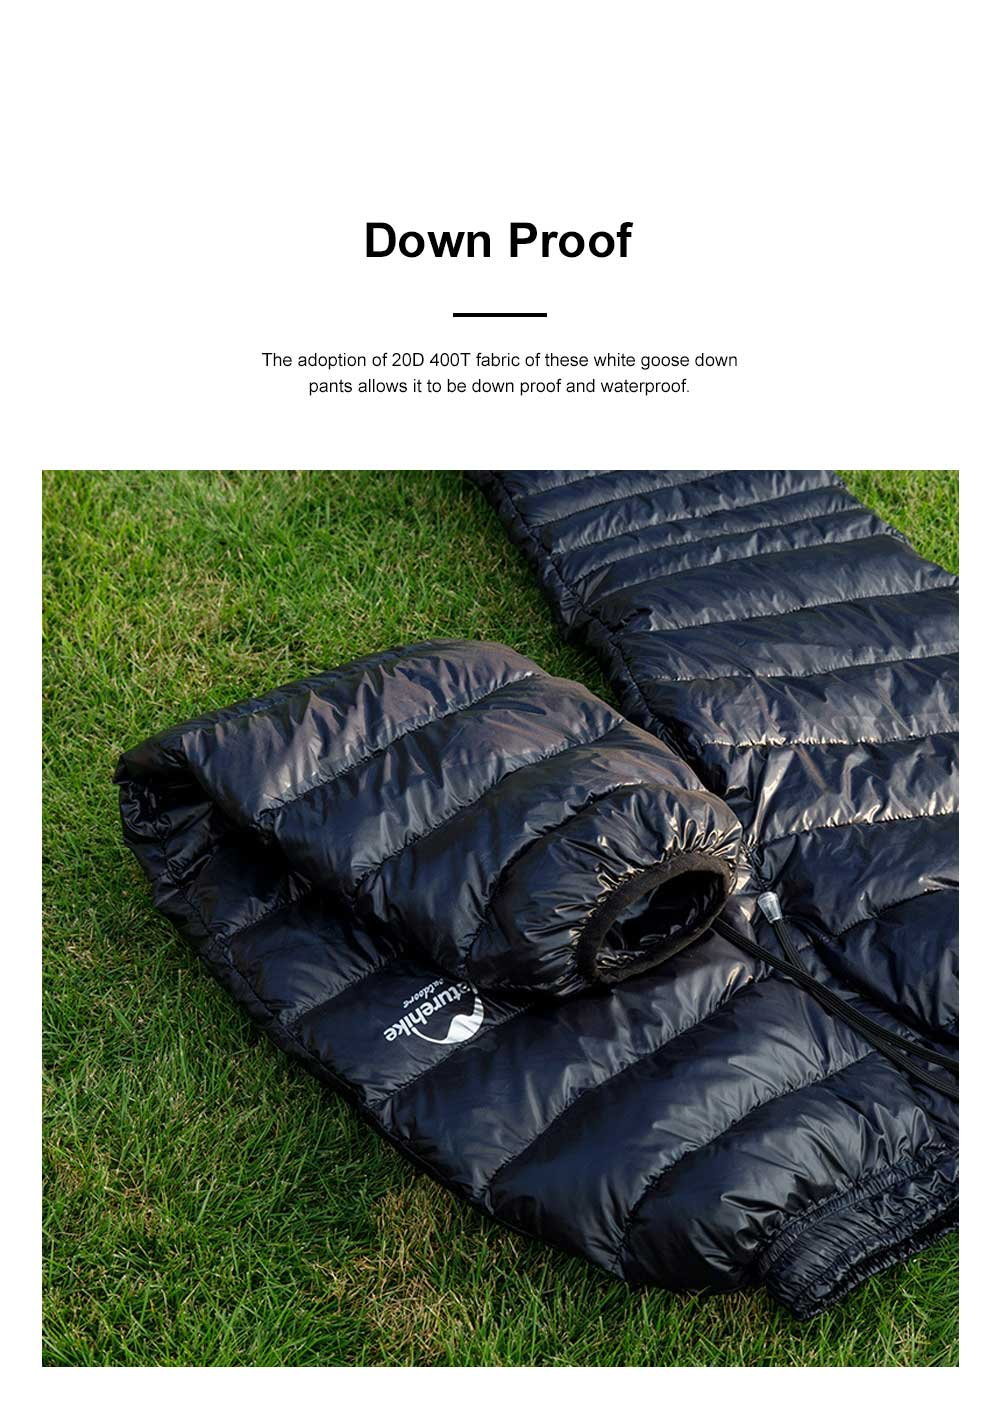 Naturehike White Goose Down Pants for Winter Sports Waterproof Thermal Winter Trousers Windproof Down Wadded Trousers Down Pants 3